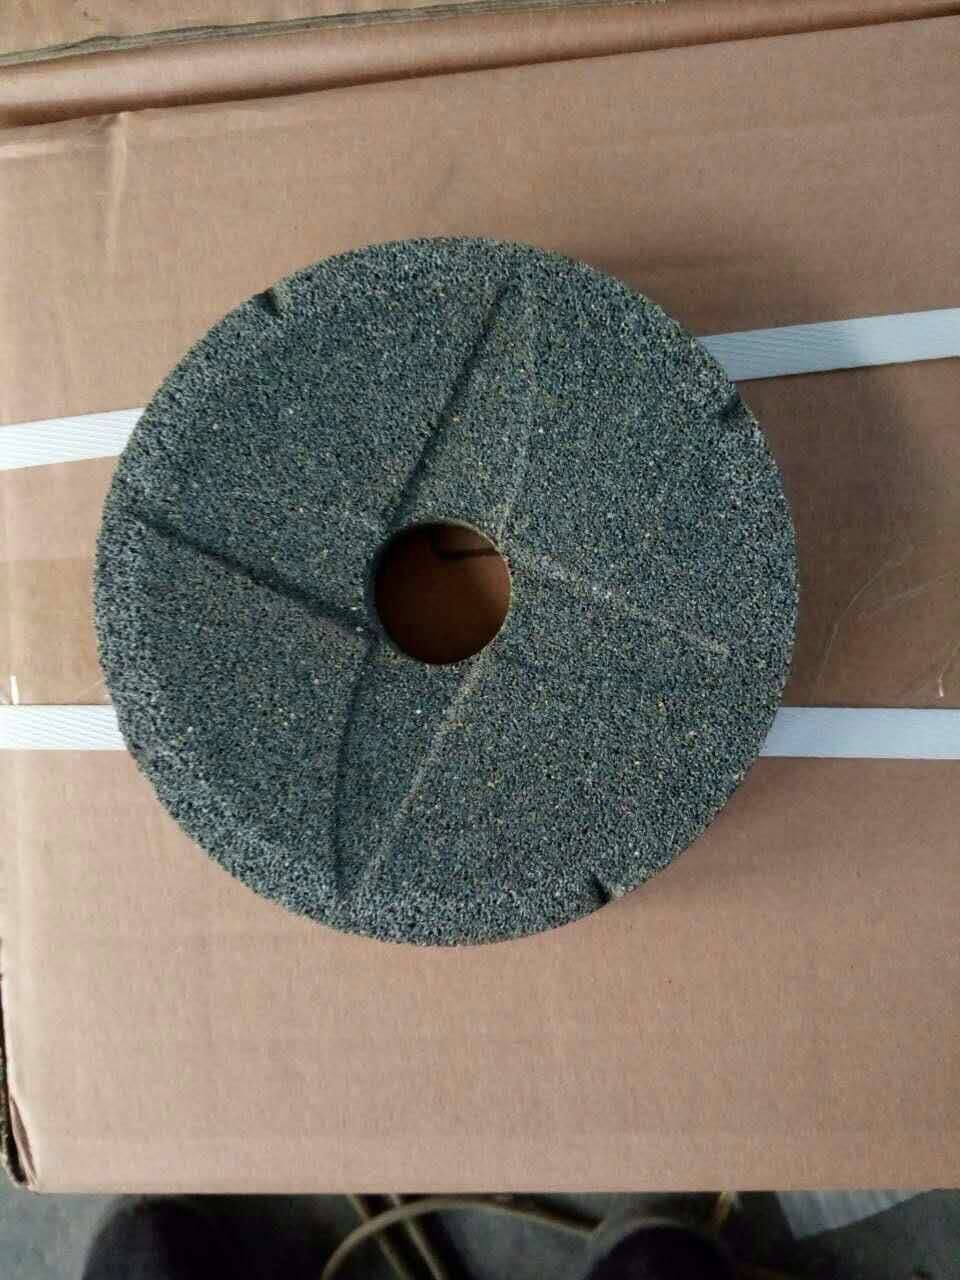 Flour Mill Grinding Wheel